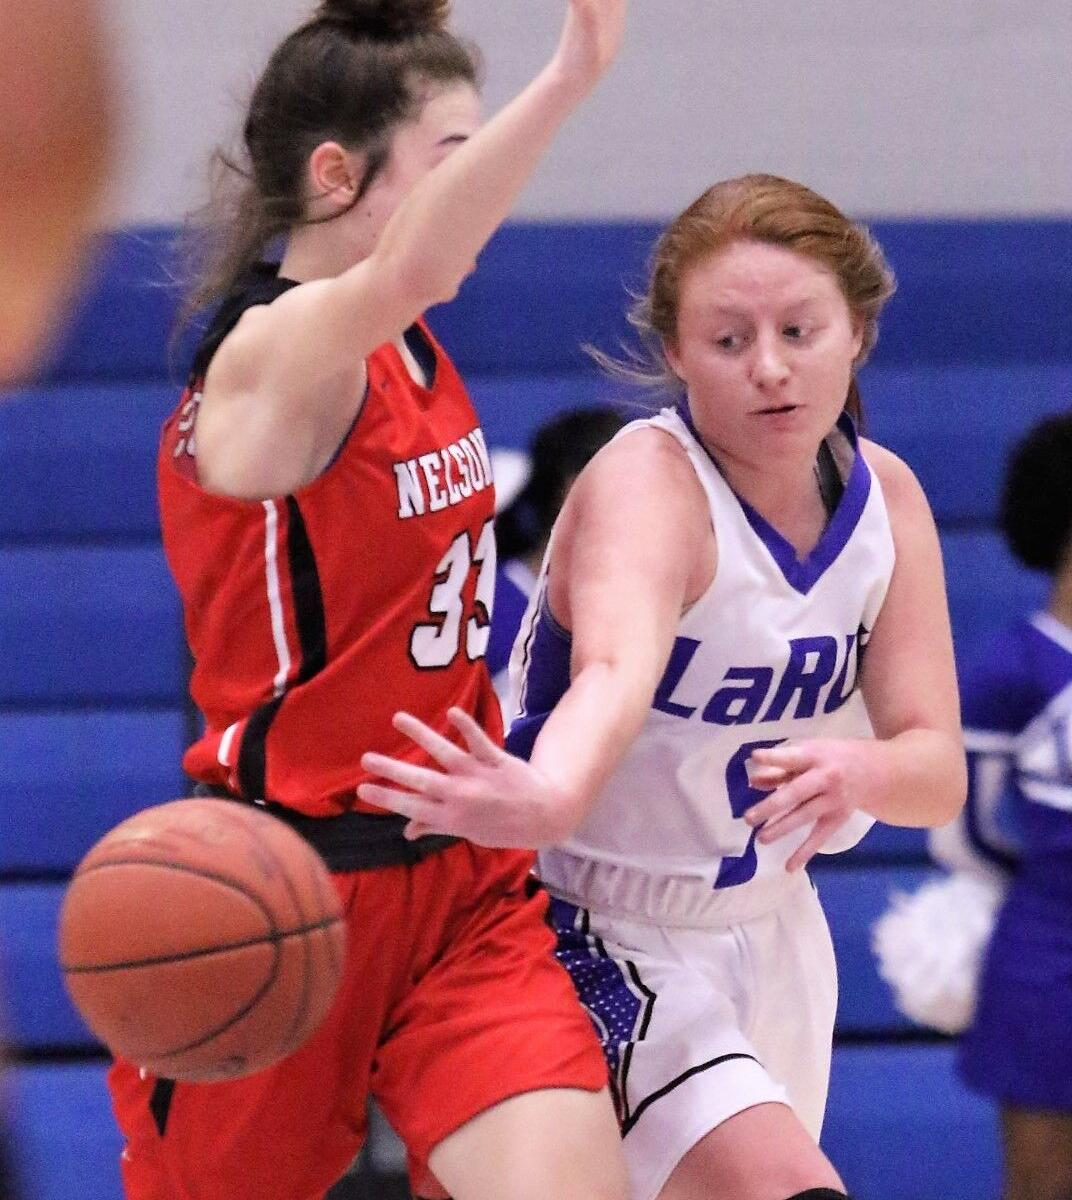 GIRLS' PREP BASKETBALL: Moore takes on added duties for Lady Hawks